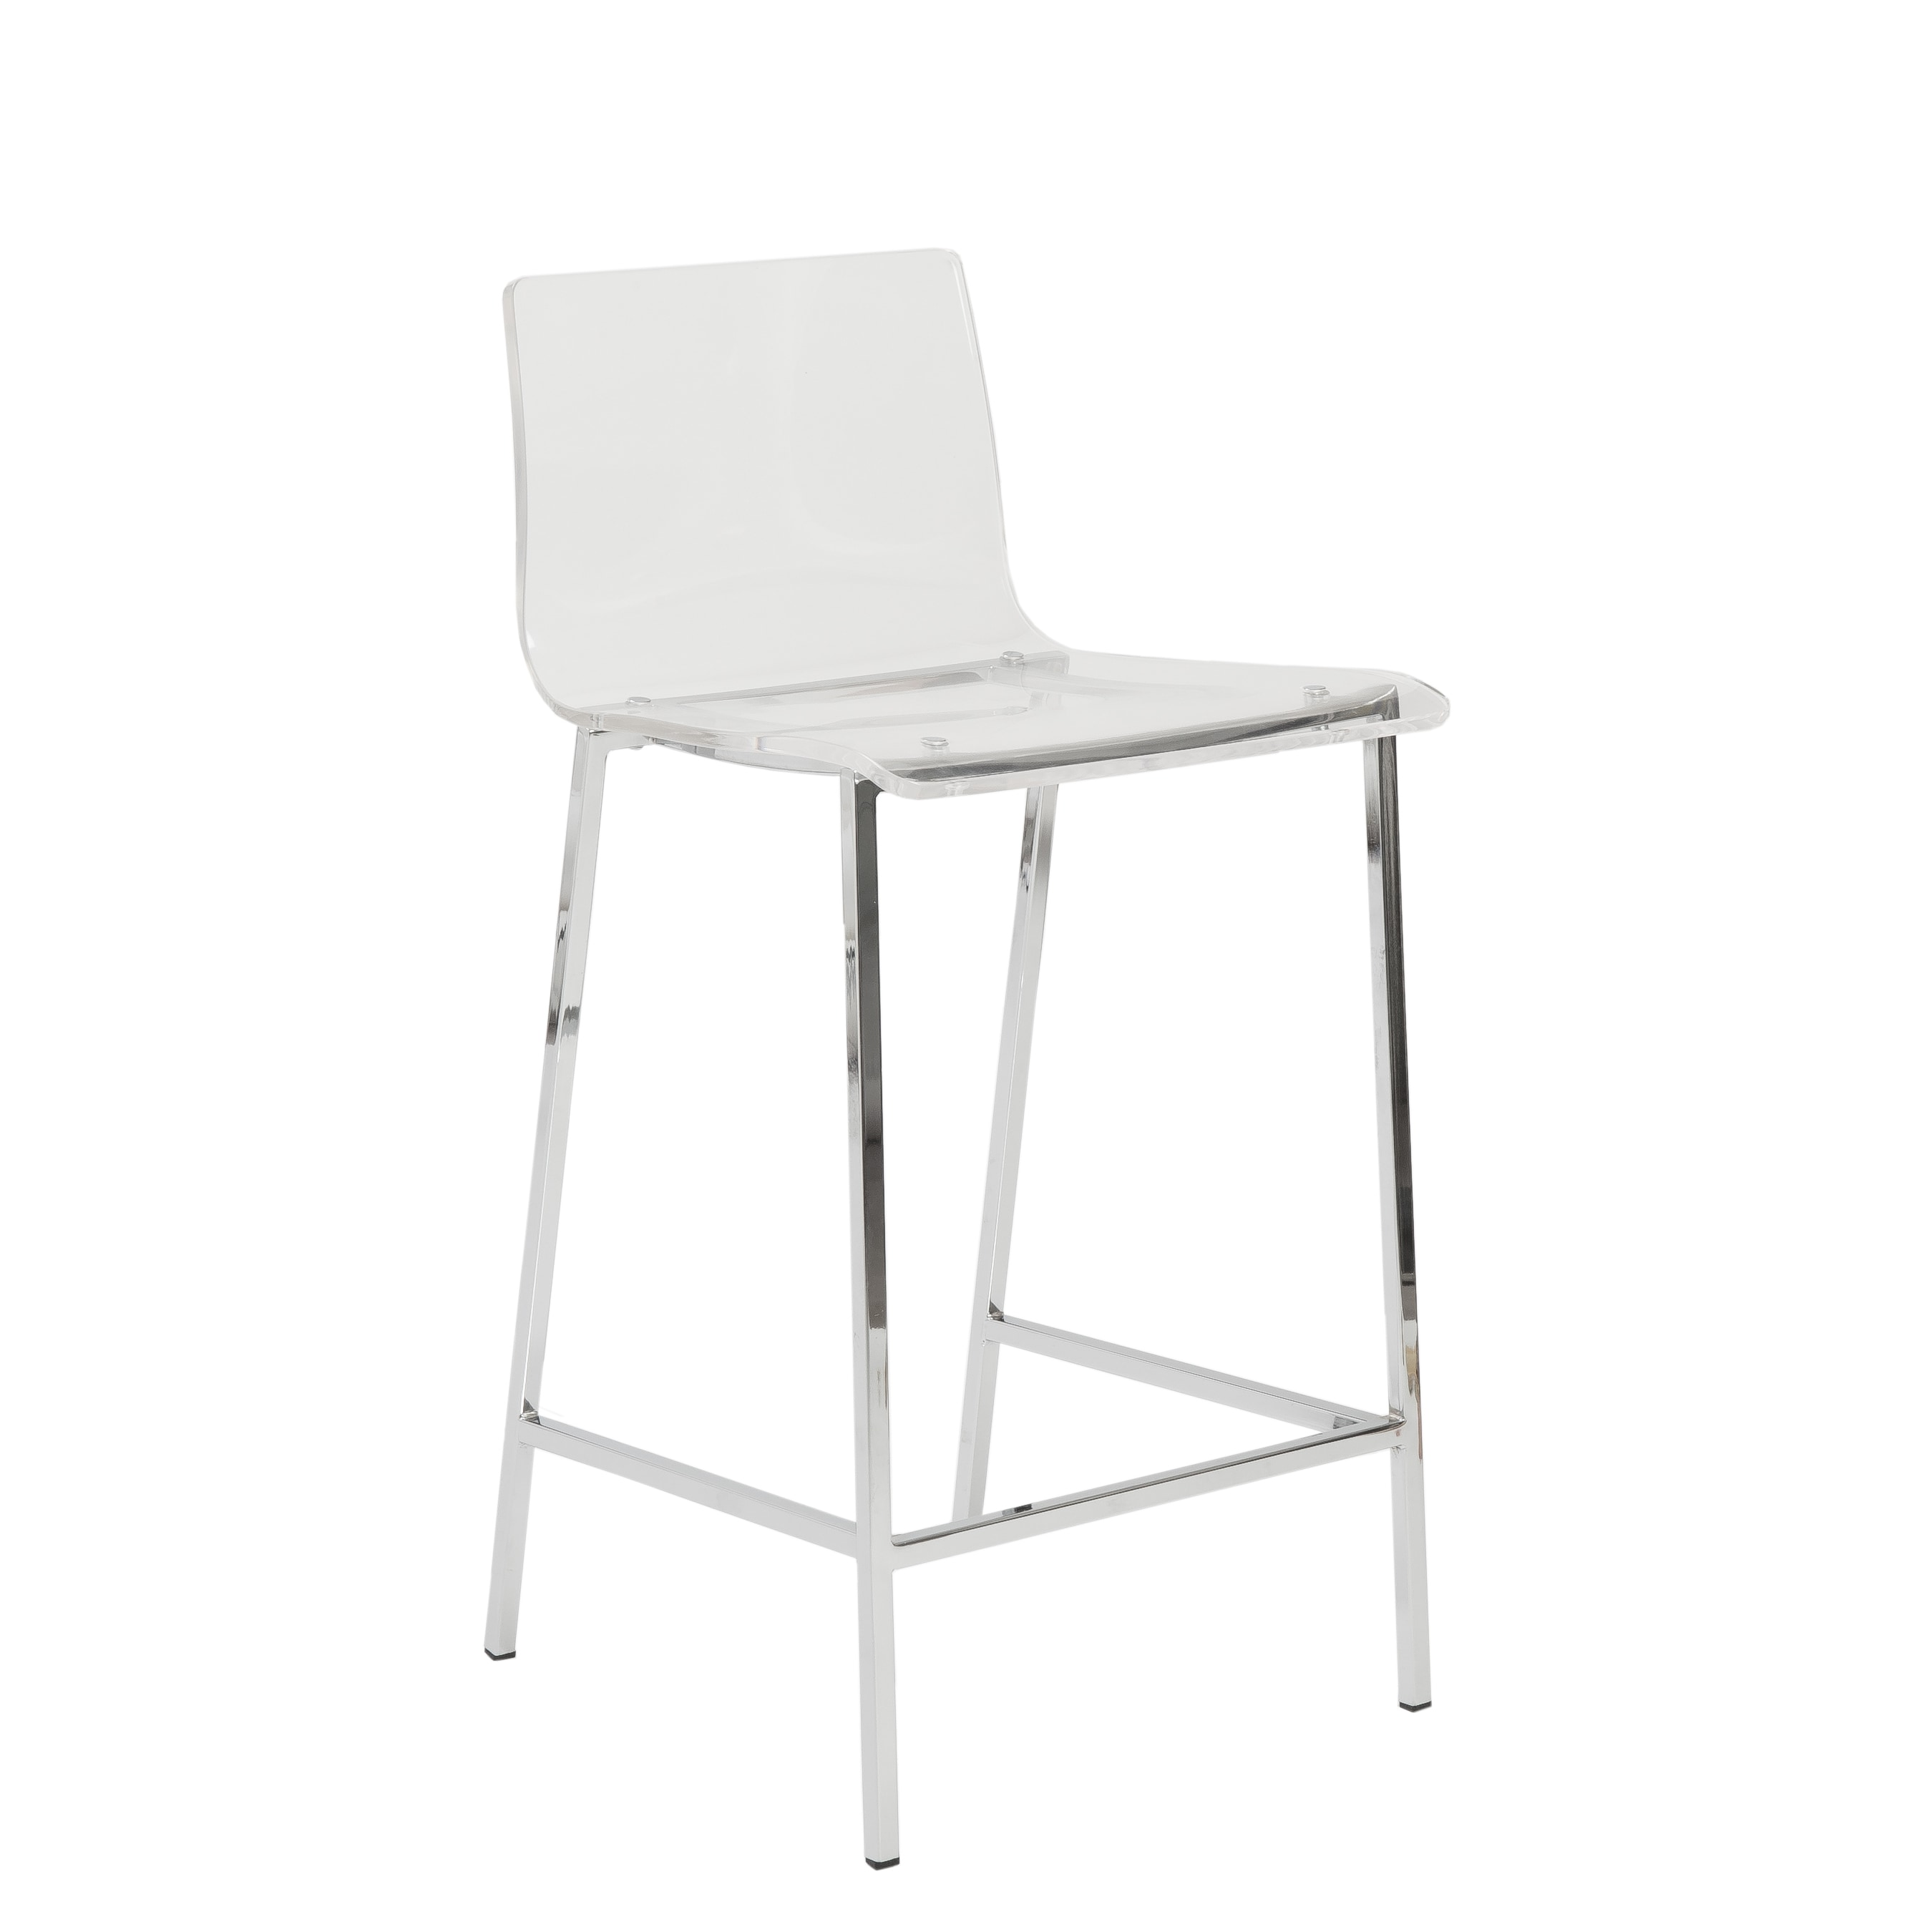 Terrific Chloe 26 Inch Clear Chrome Counter Stool Set Of 2 Gmtry Best Dining Table And Chair Ideas Images Gmtryco